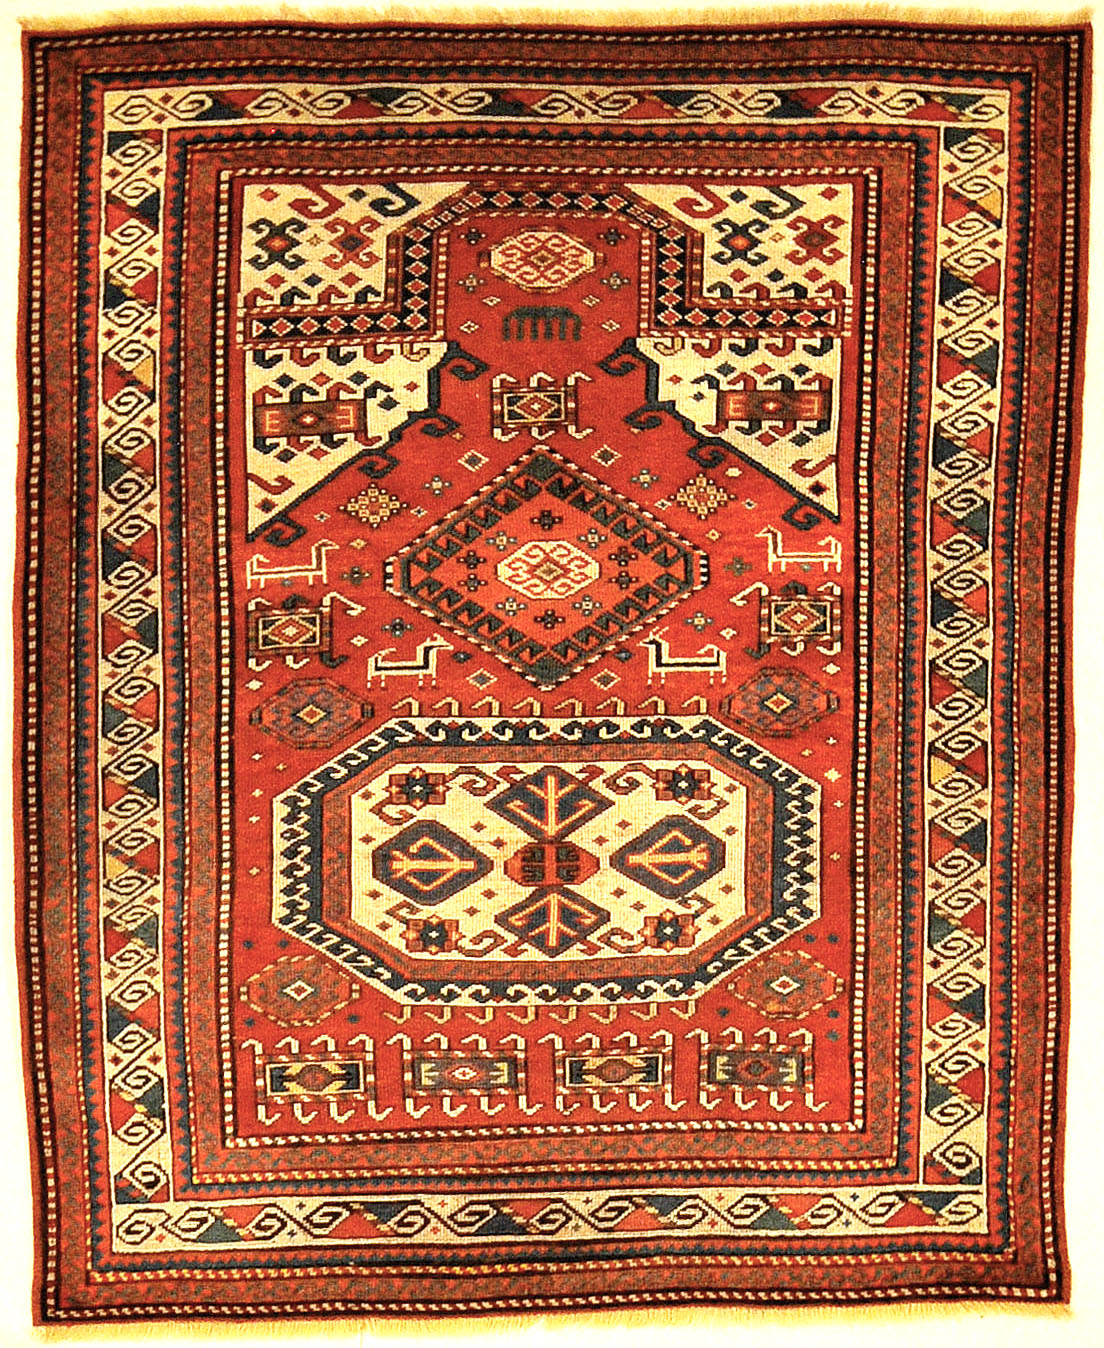 Finest Rare Museum Quality Caucasian Kazak Rug From the Early 19th Century. Genuine Woven Carpet Art. Santa Barbara Design Center Rugs and More.